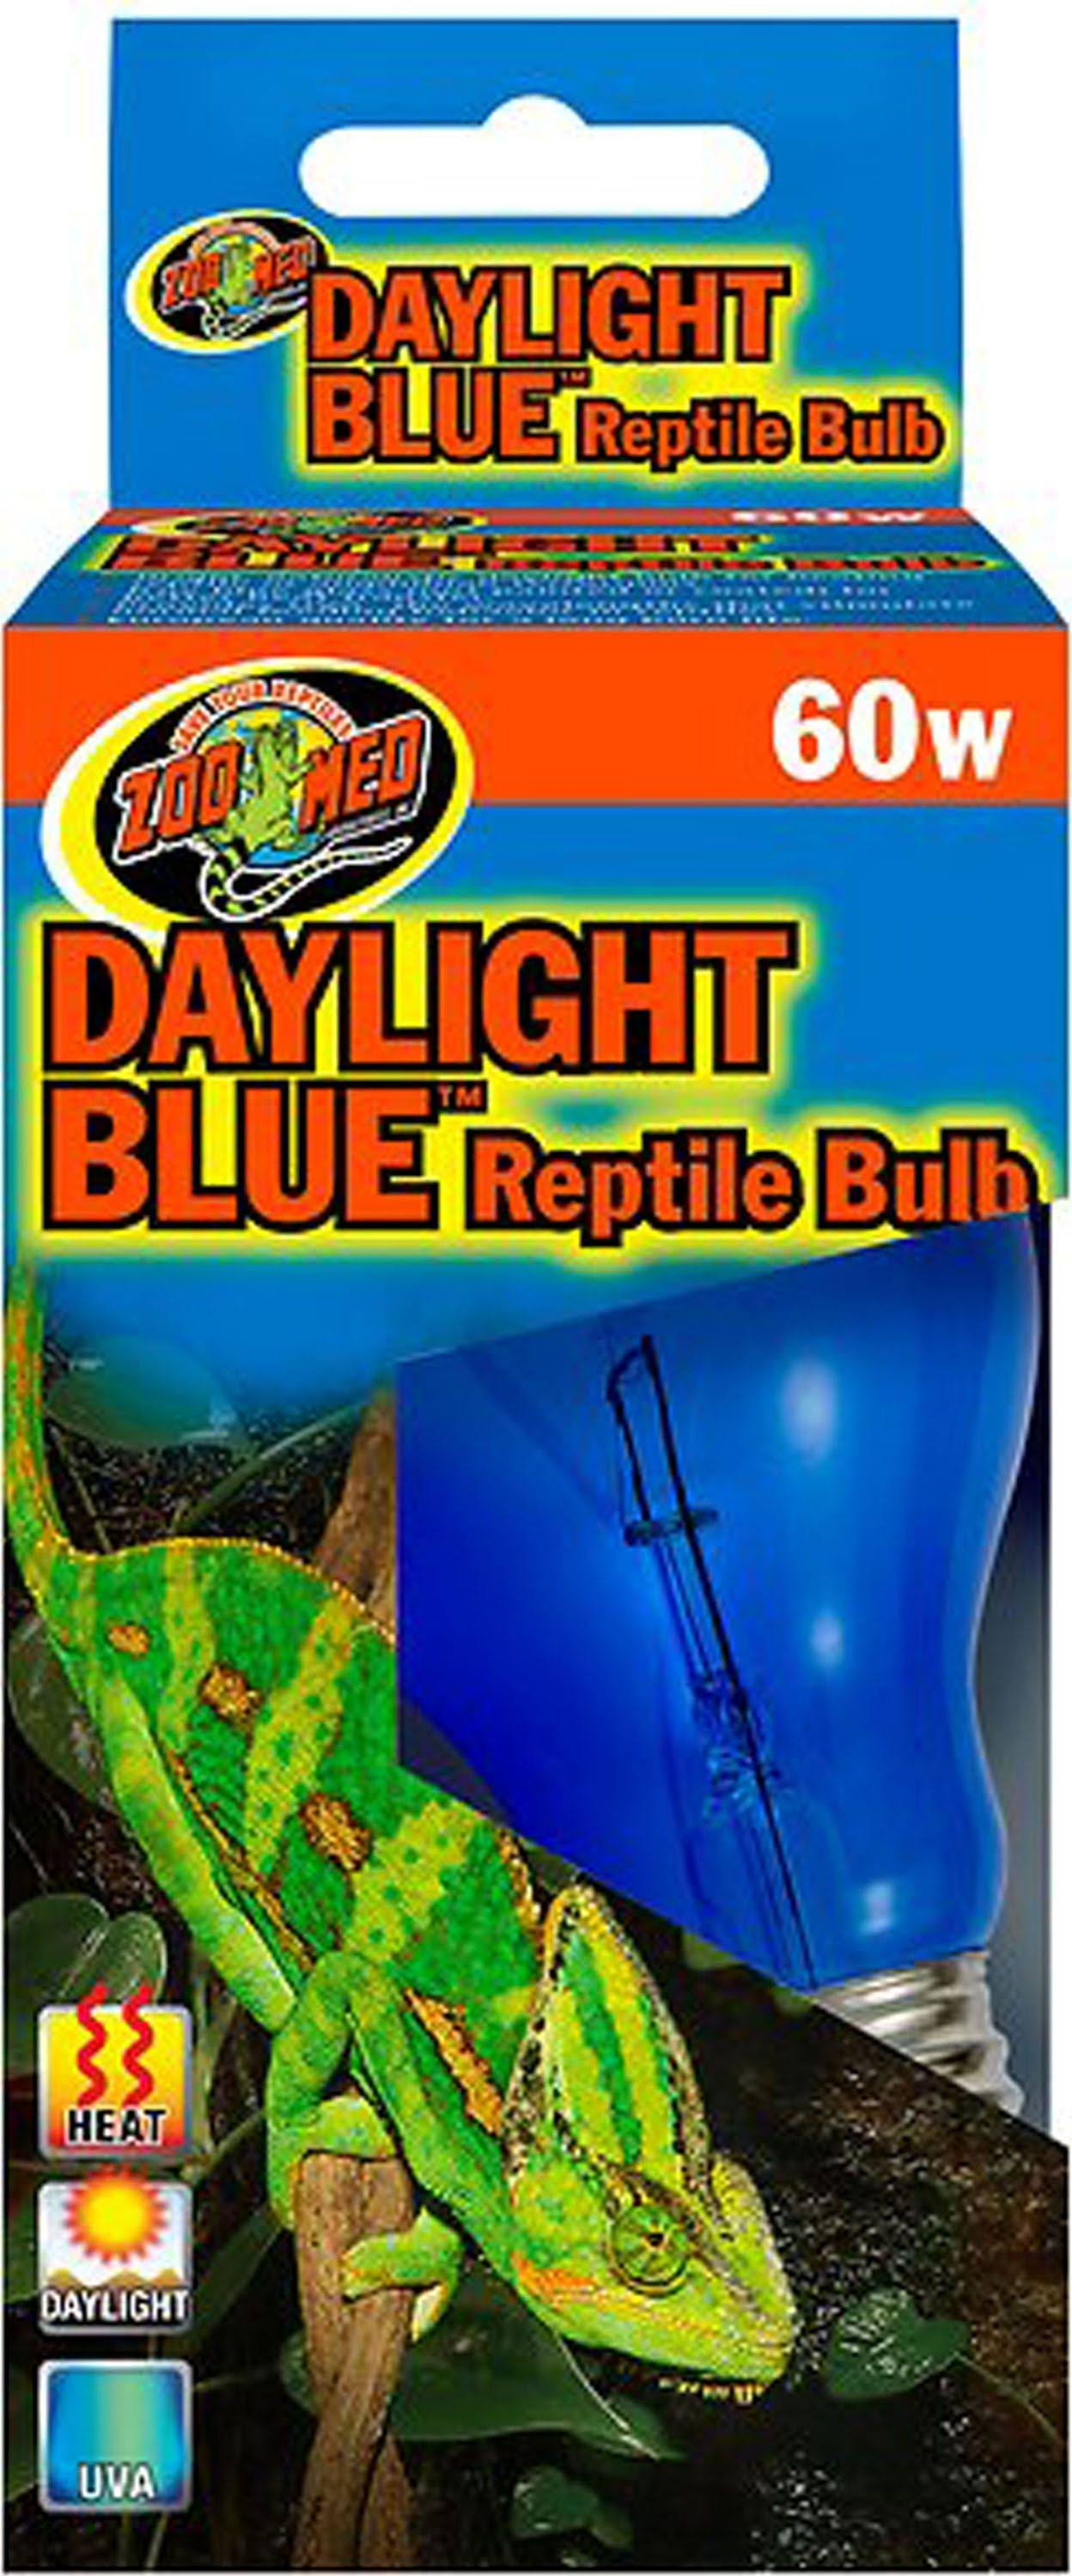 Zoo Med Daylight Blue Reptile Bulb - 60w